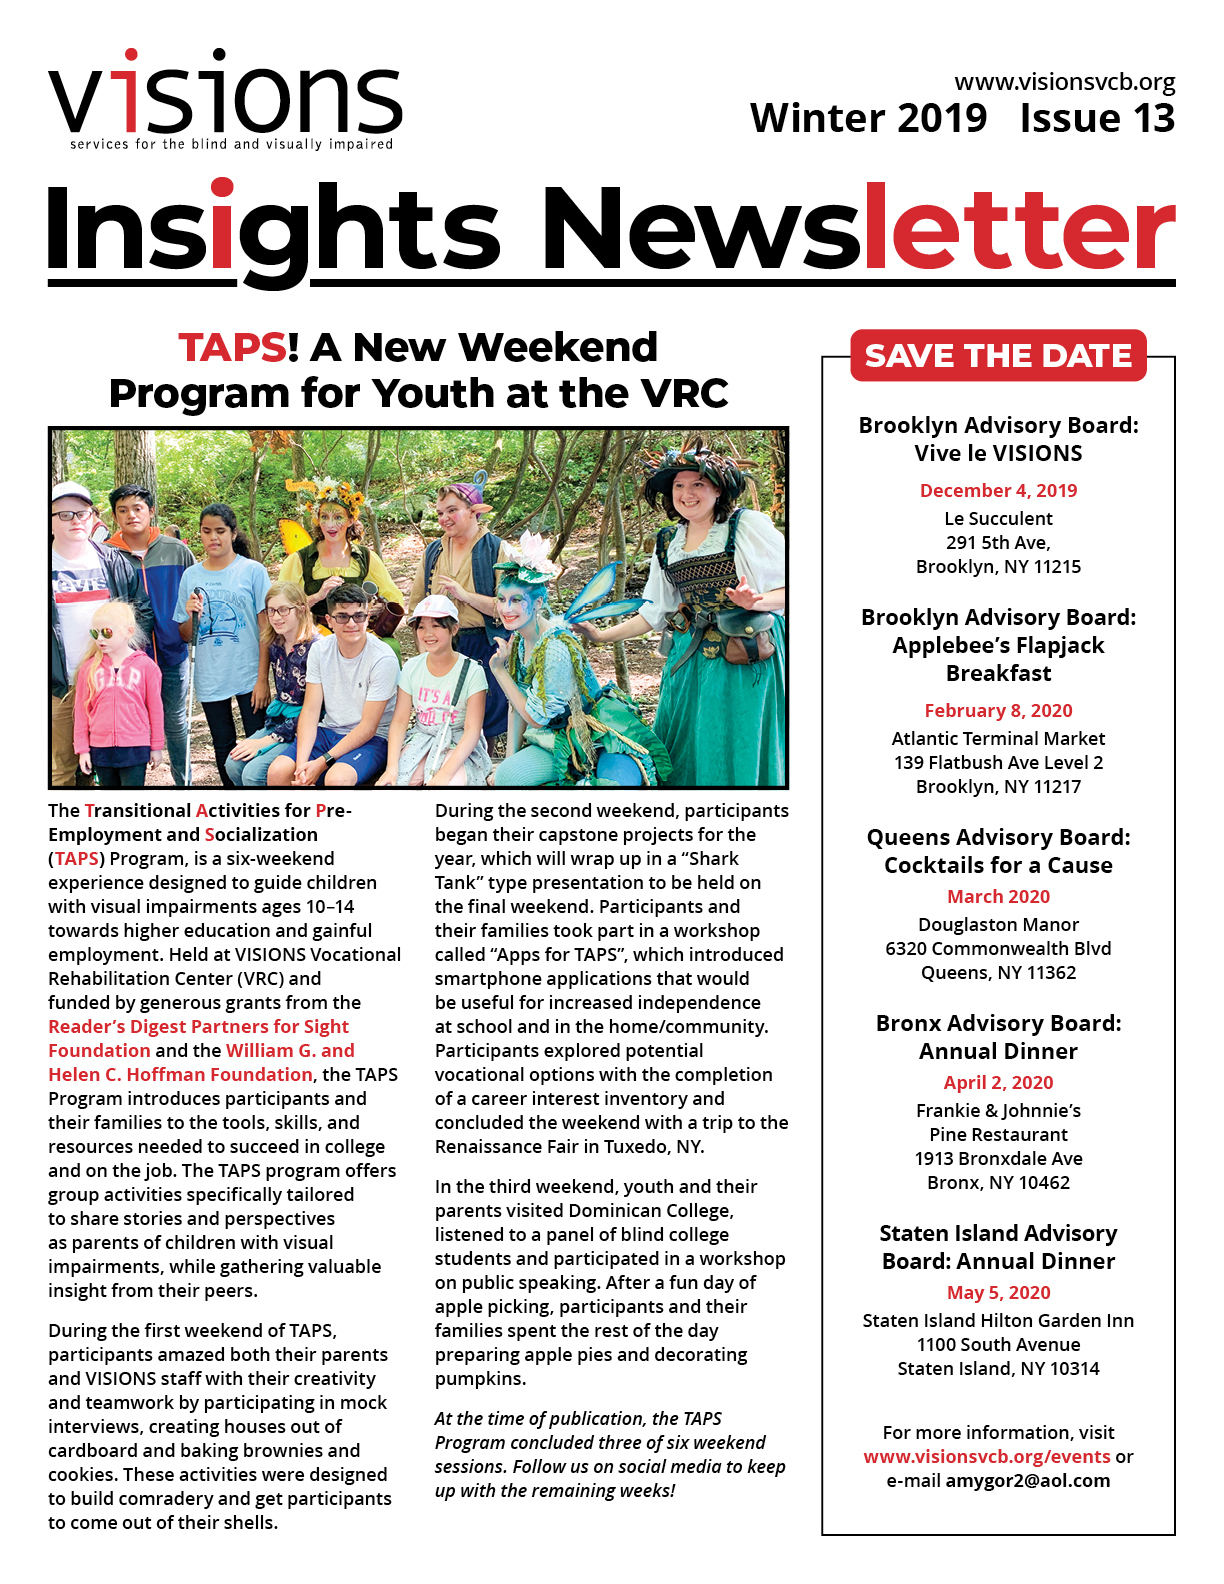 Graphic: VISIONS Insights newsletter, Winter 2019 issue cover. Double-tap or click to read this issue online.